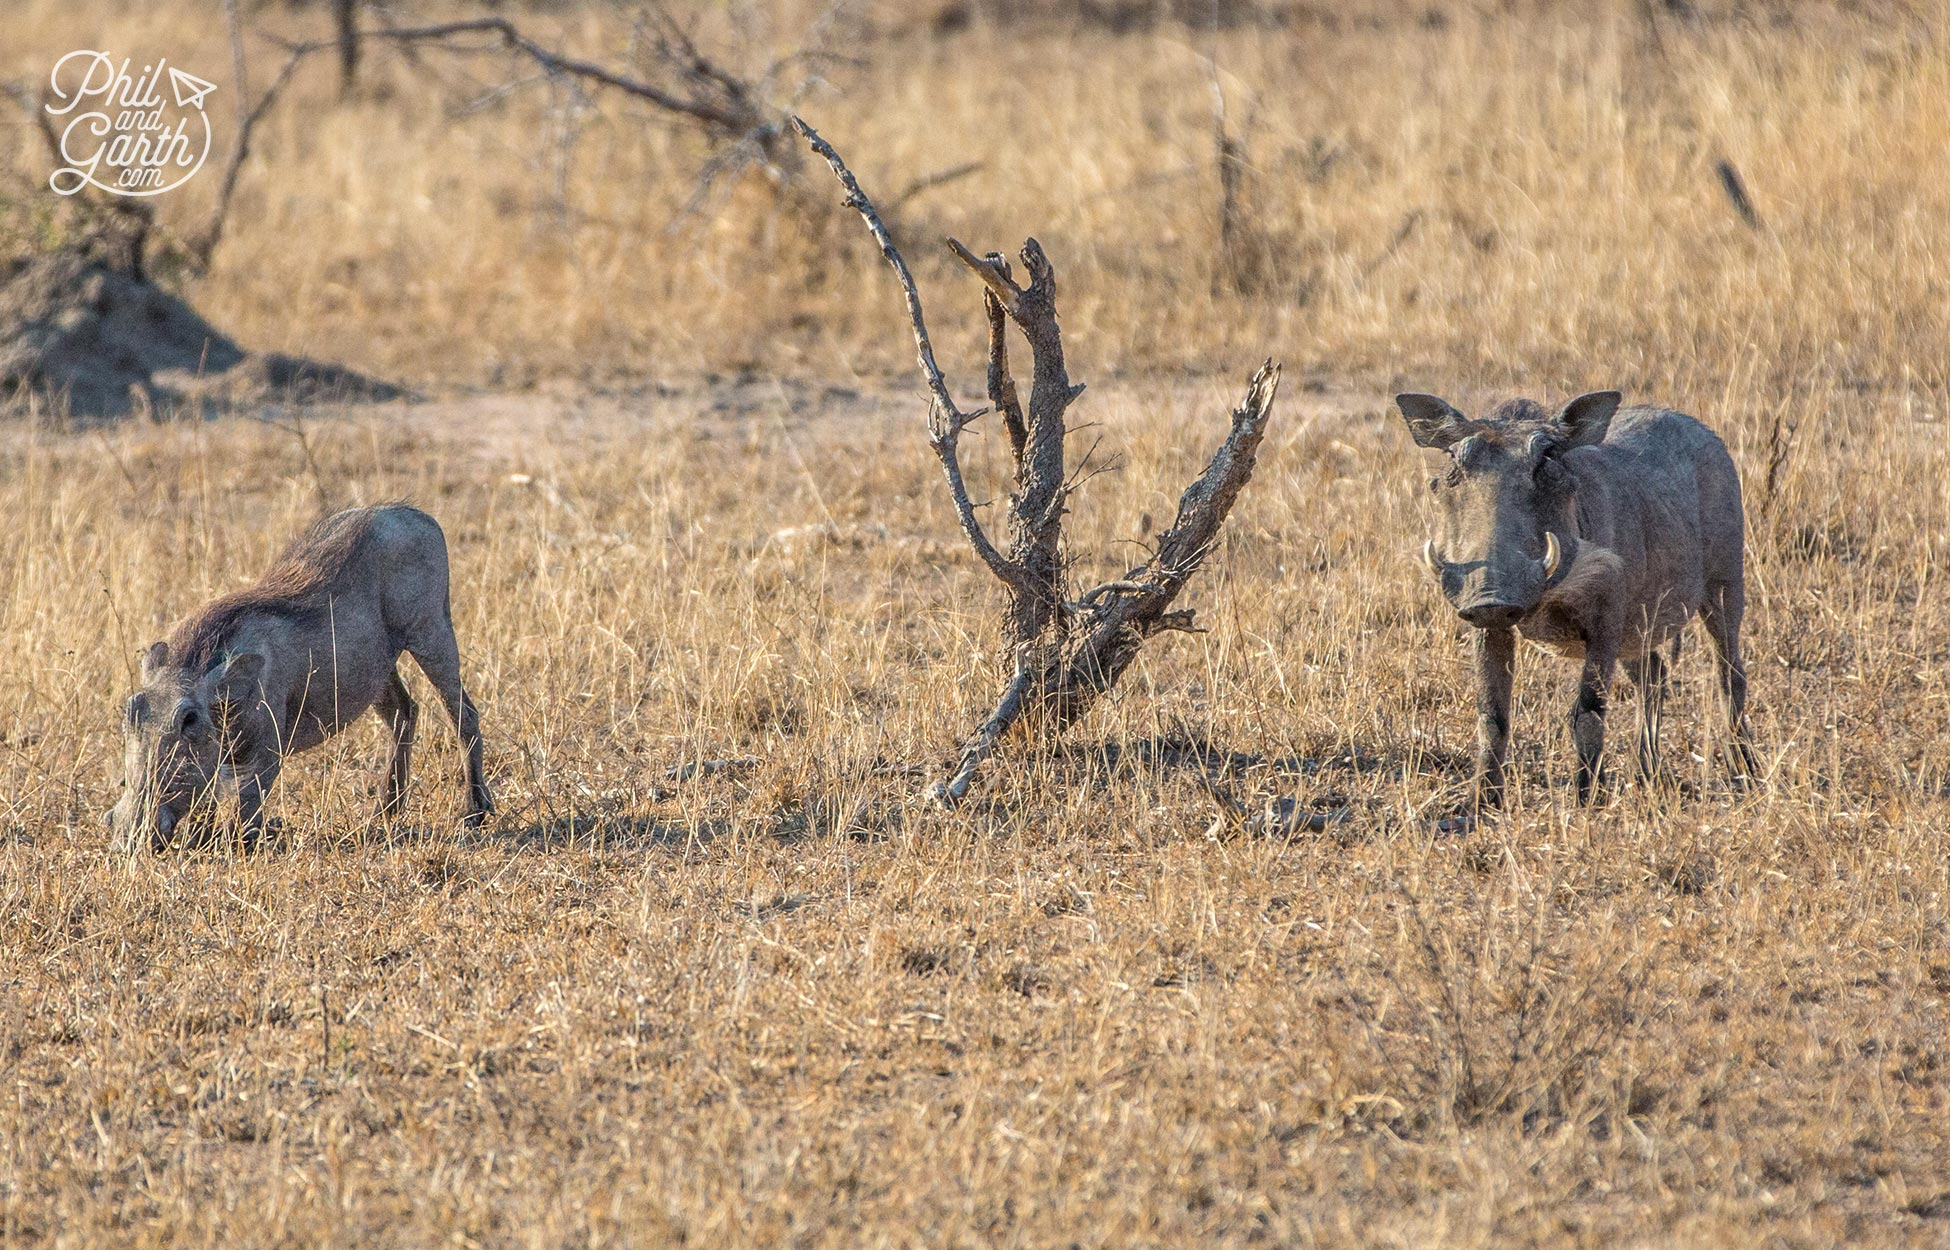 A couple of warthogs in the early morning sunshine